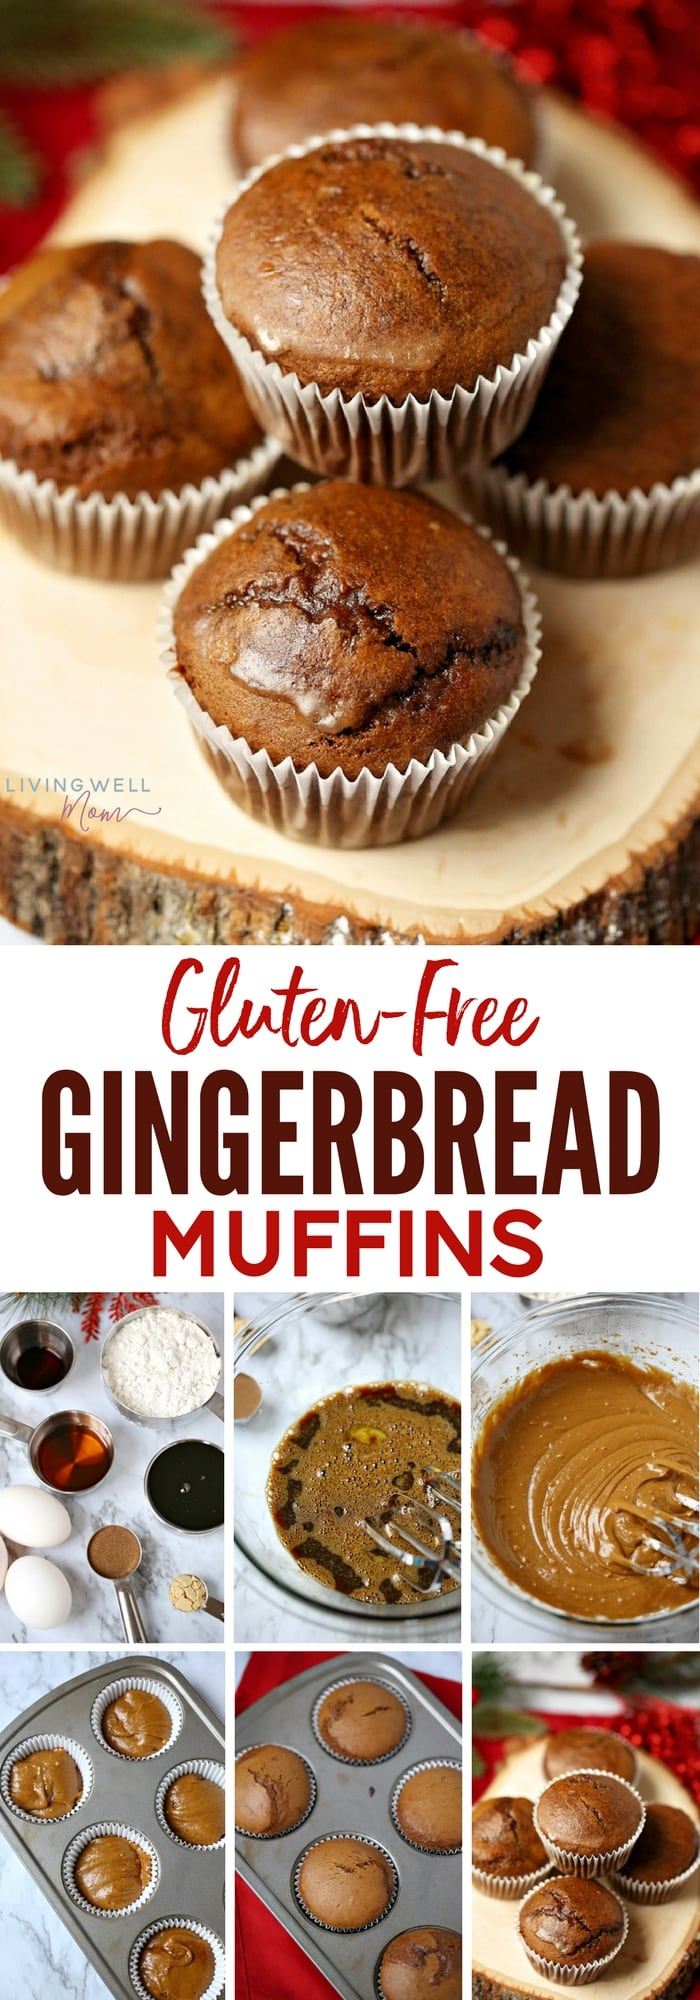 collection of photos - gluten-free gingerbread muffins